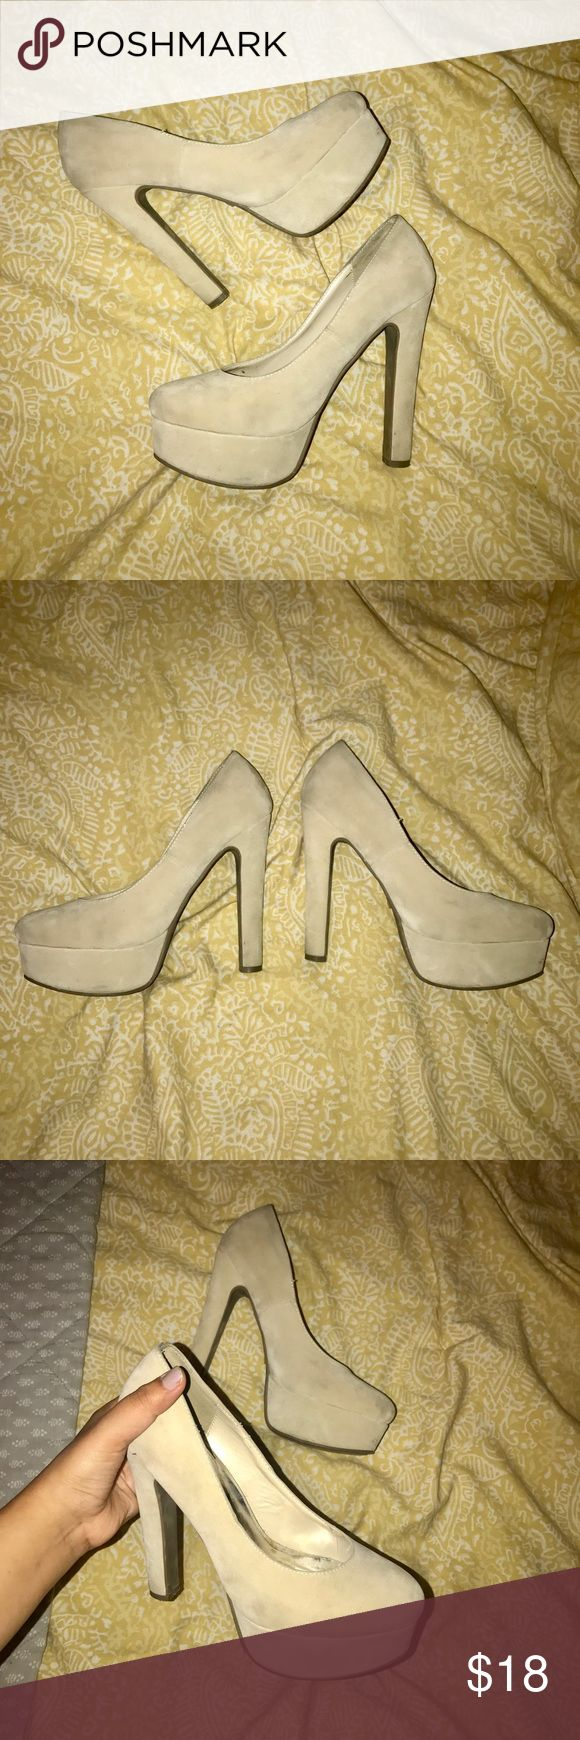 Tan Bold-Statement Stilettos Bring the sexy side out with these pretty heels!! Although between 4-5 inches still quite comfy. Has a tiny stain but not that noticeable. Soft suede material. Great condition! Worn about twice Lady Luxe Shoes Heels